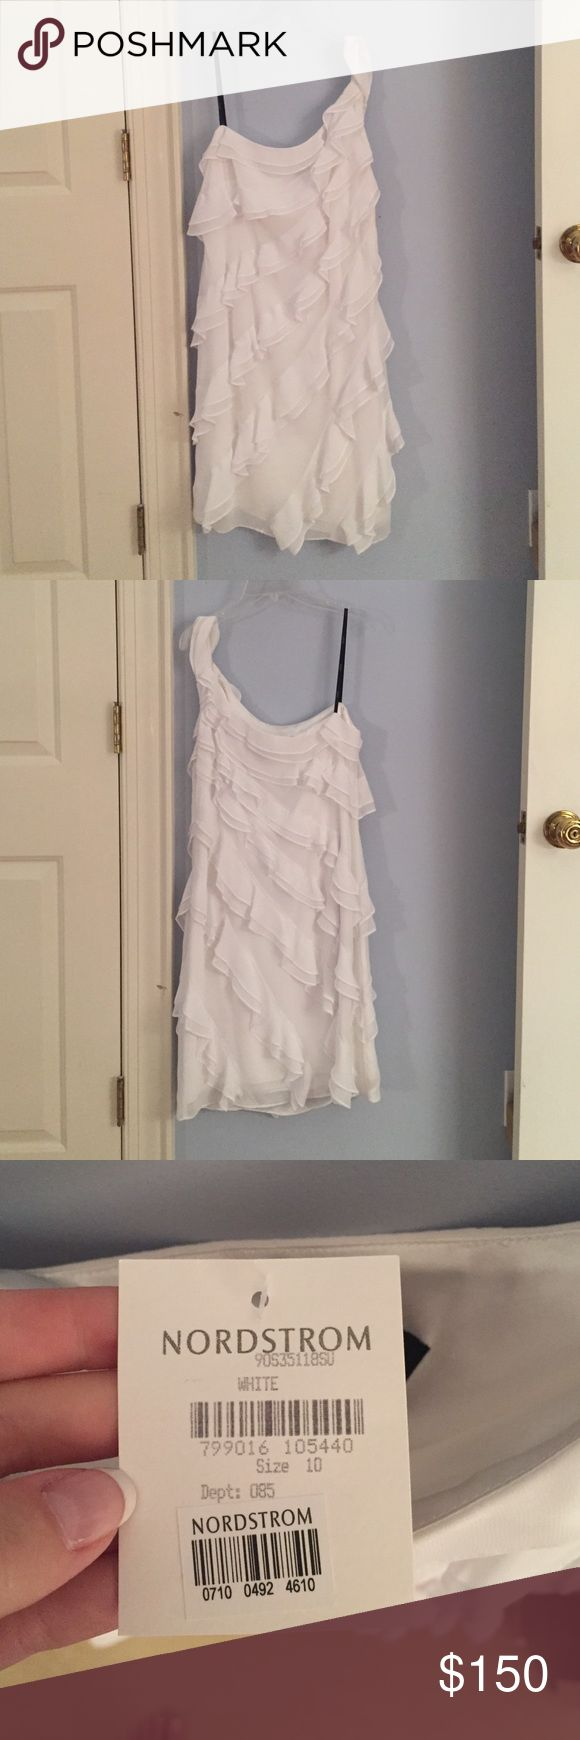 White One Shoulder  Laundry by Shelli Segal Dress Brand New with Tags, White, Ruffled, One Shoulder,  Laundry by Shelli Segal Dress Size 10 Laundry by Shelli Segal Dresses Asymmetrical